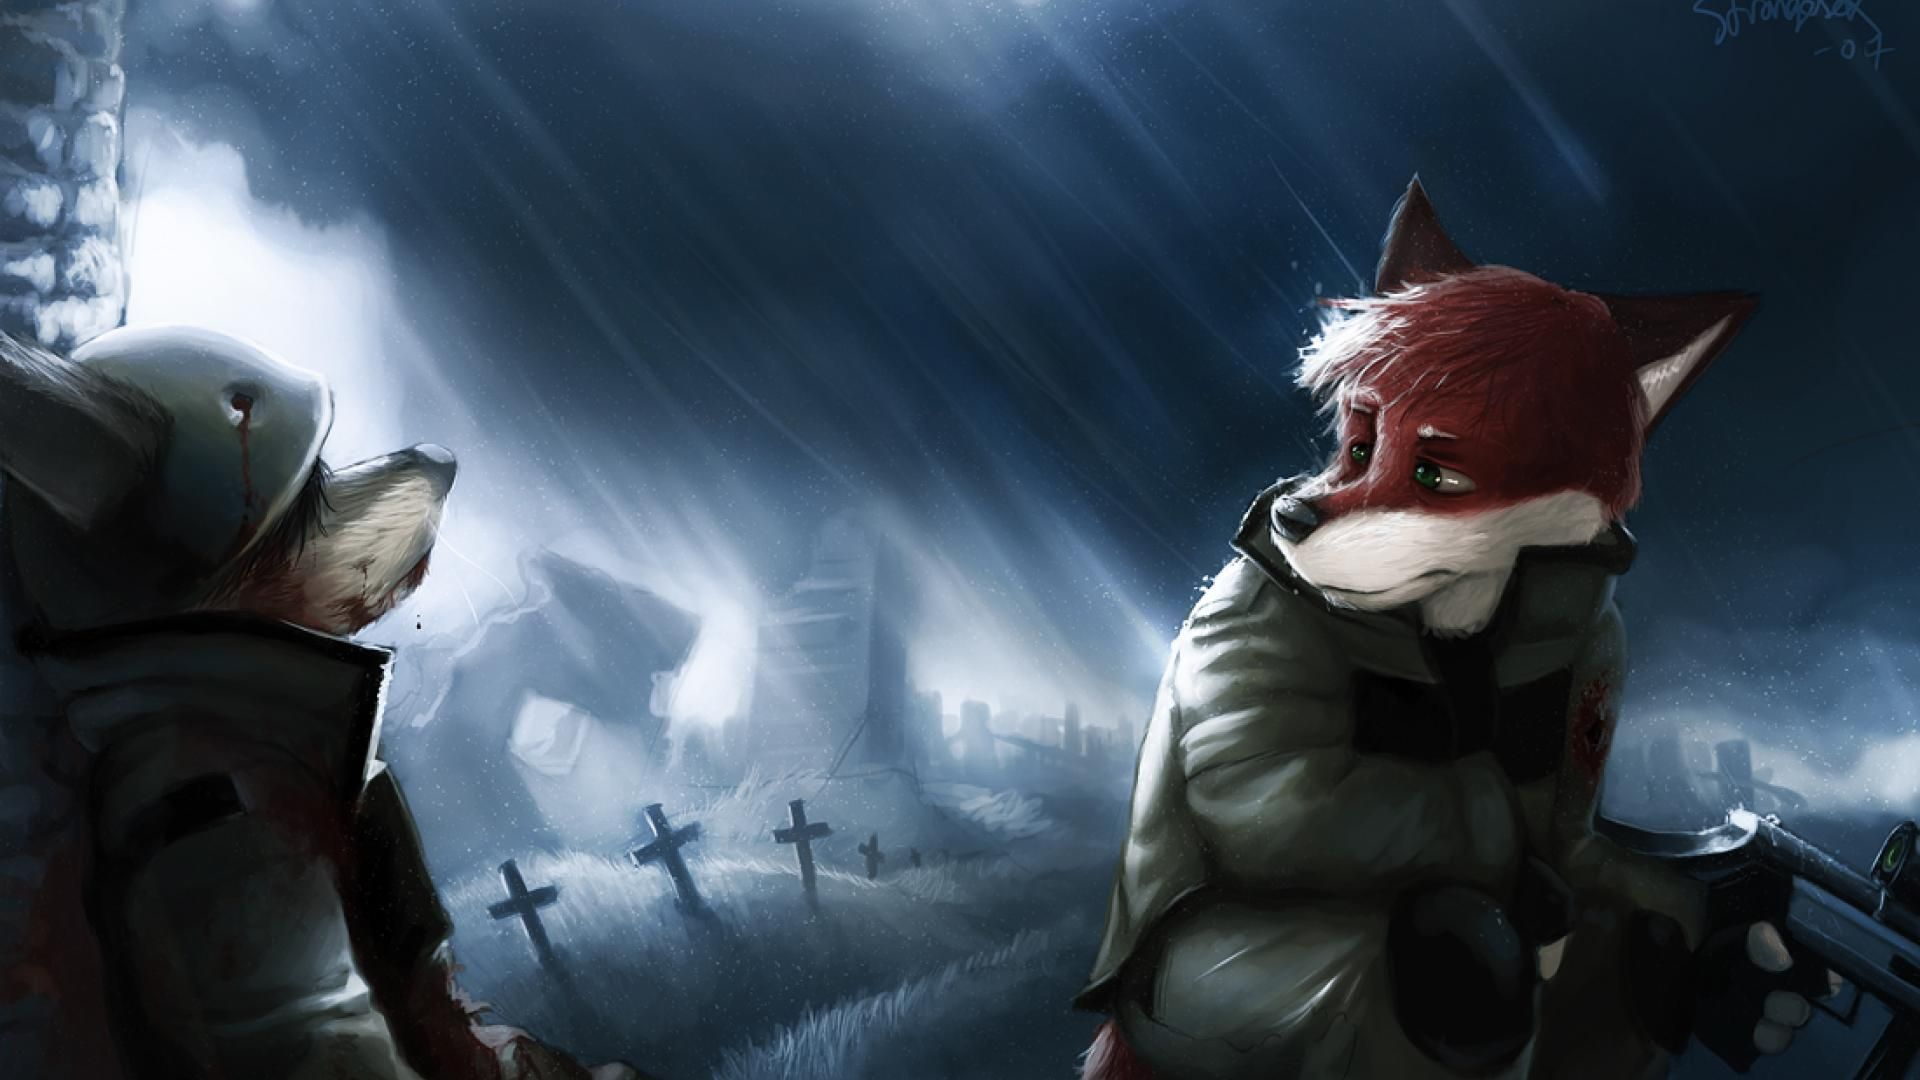 Furry Characters 4k Wallpapers Top Free Furry Characters 4k Backgrounds Wallpaperaccess